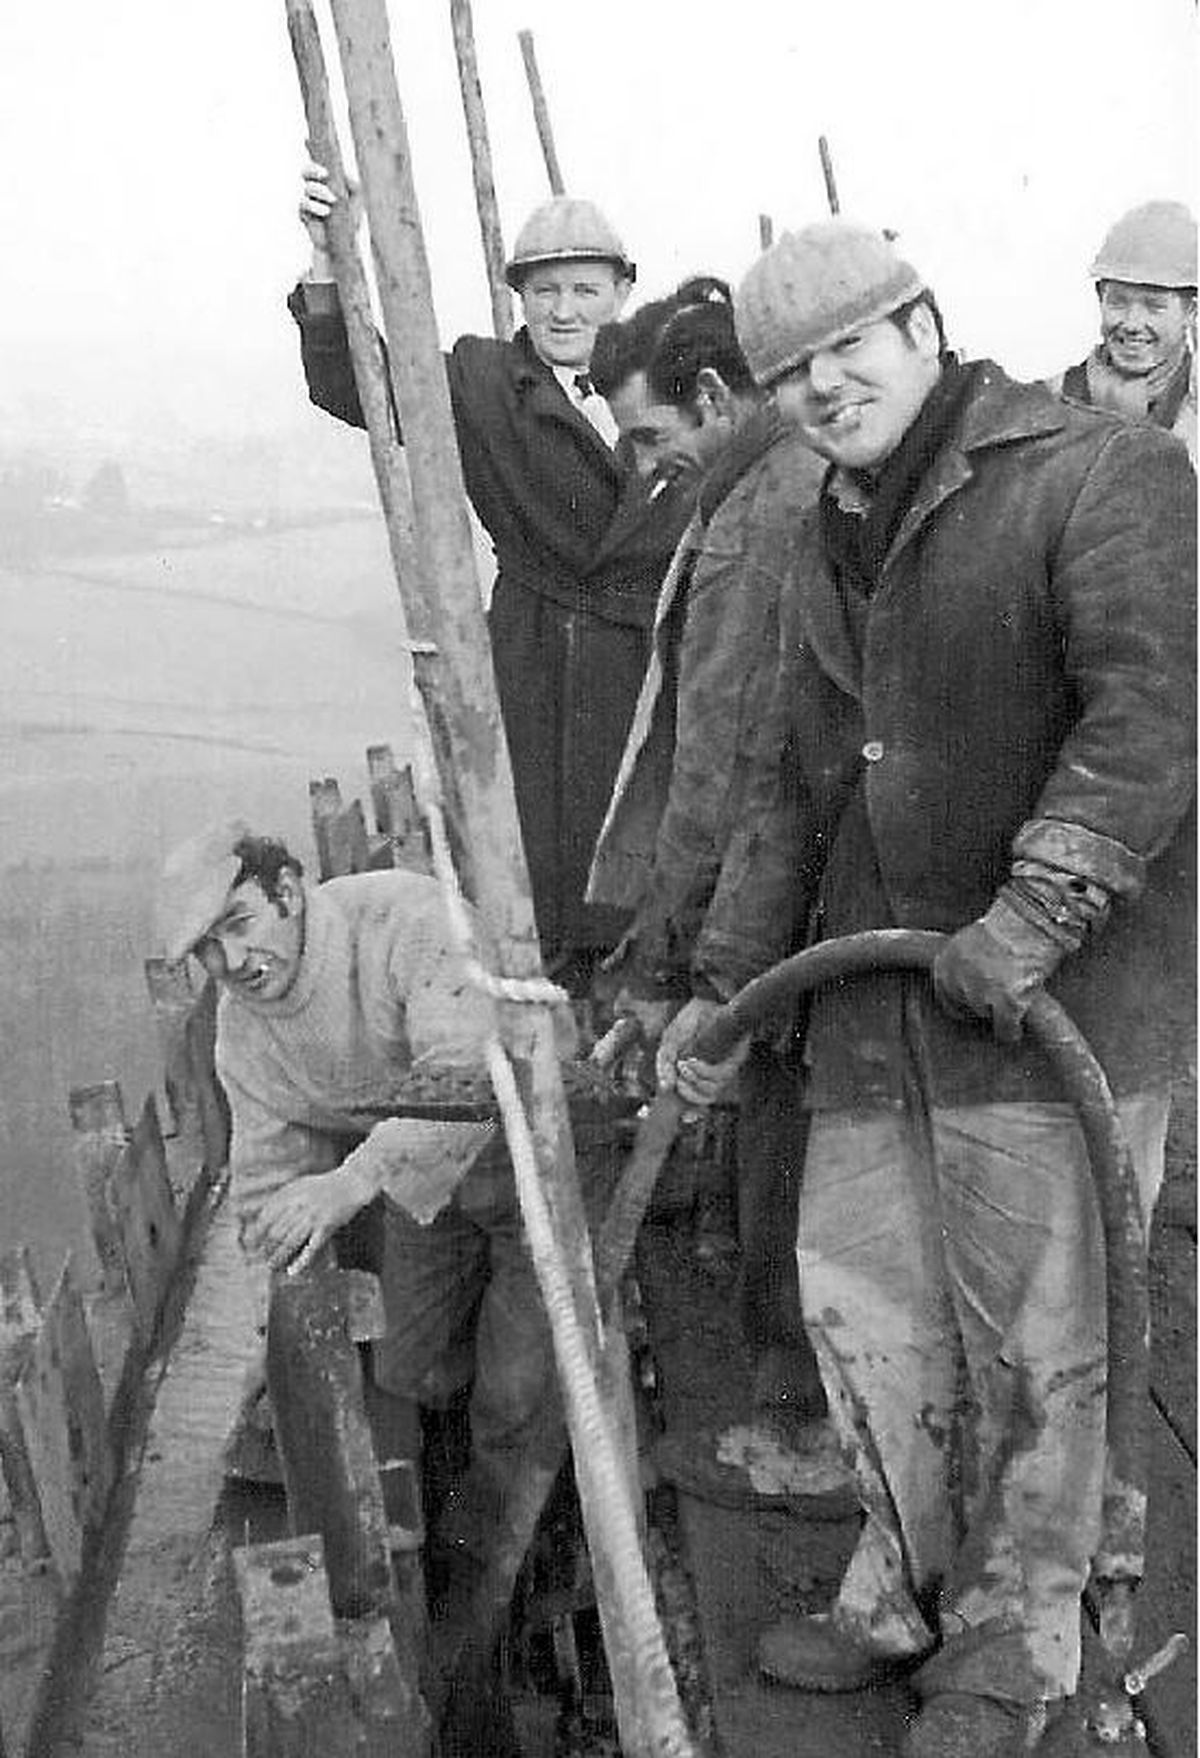 One of Vic Thompson's iconic black and white images of workers at the power station